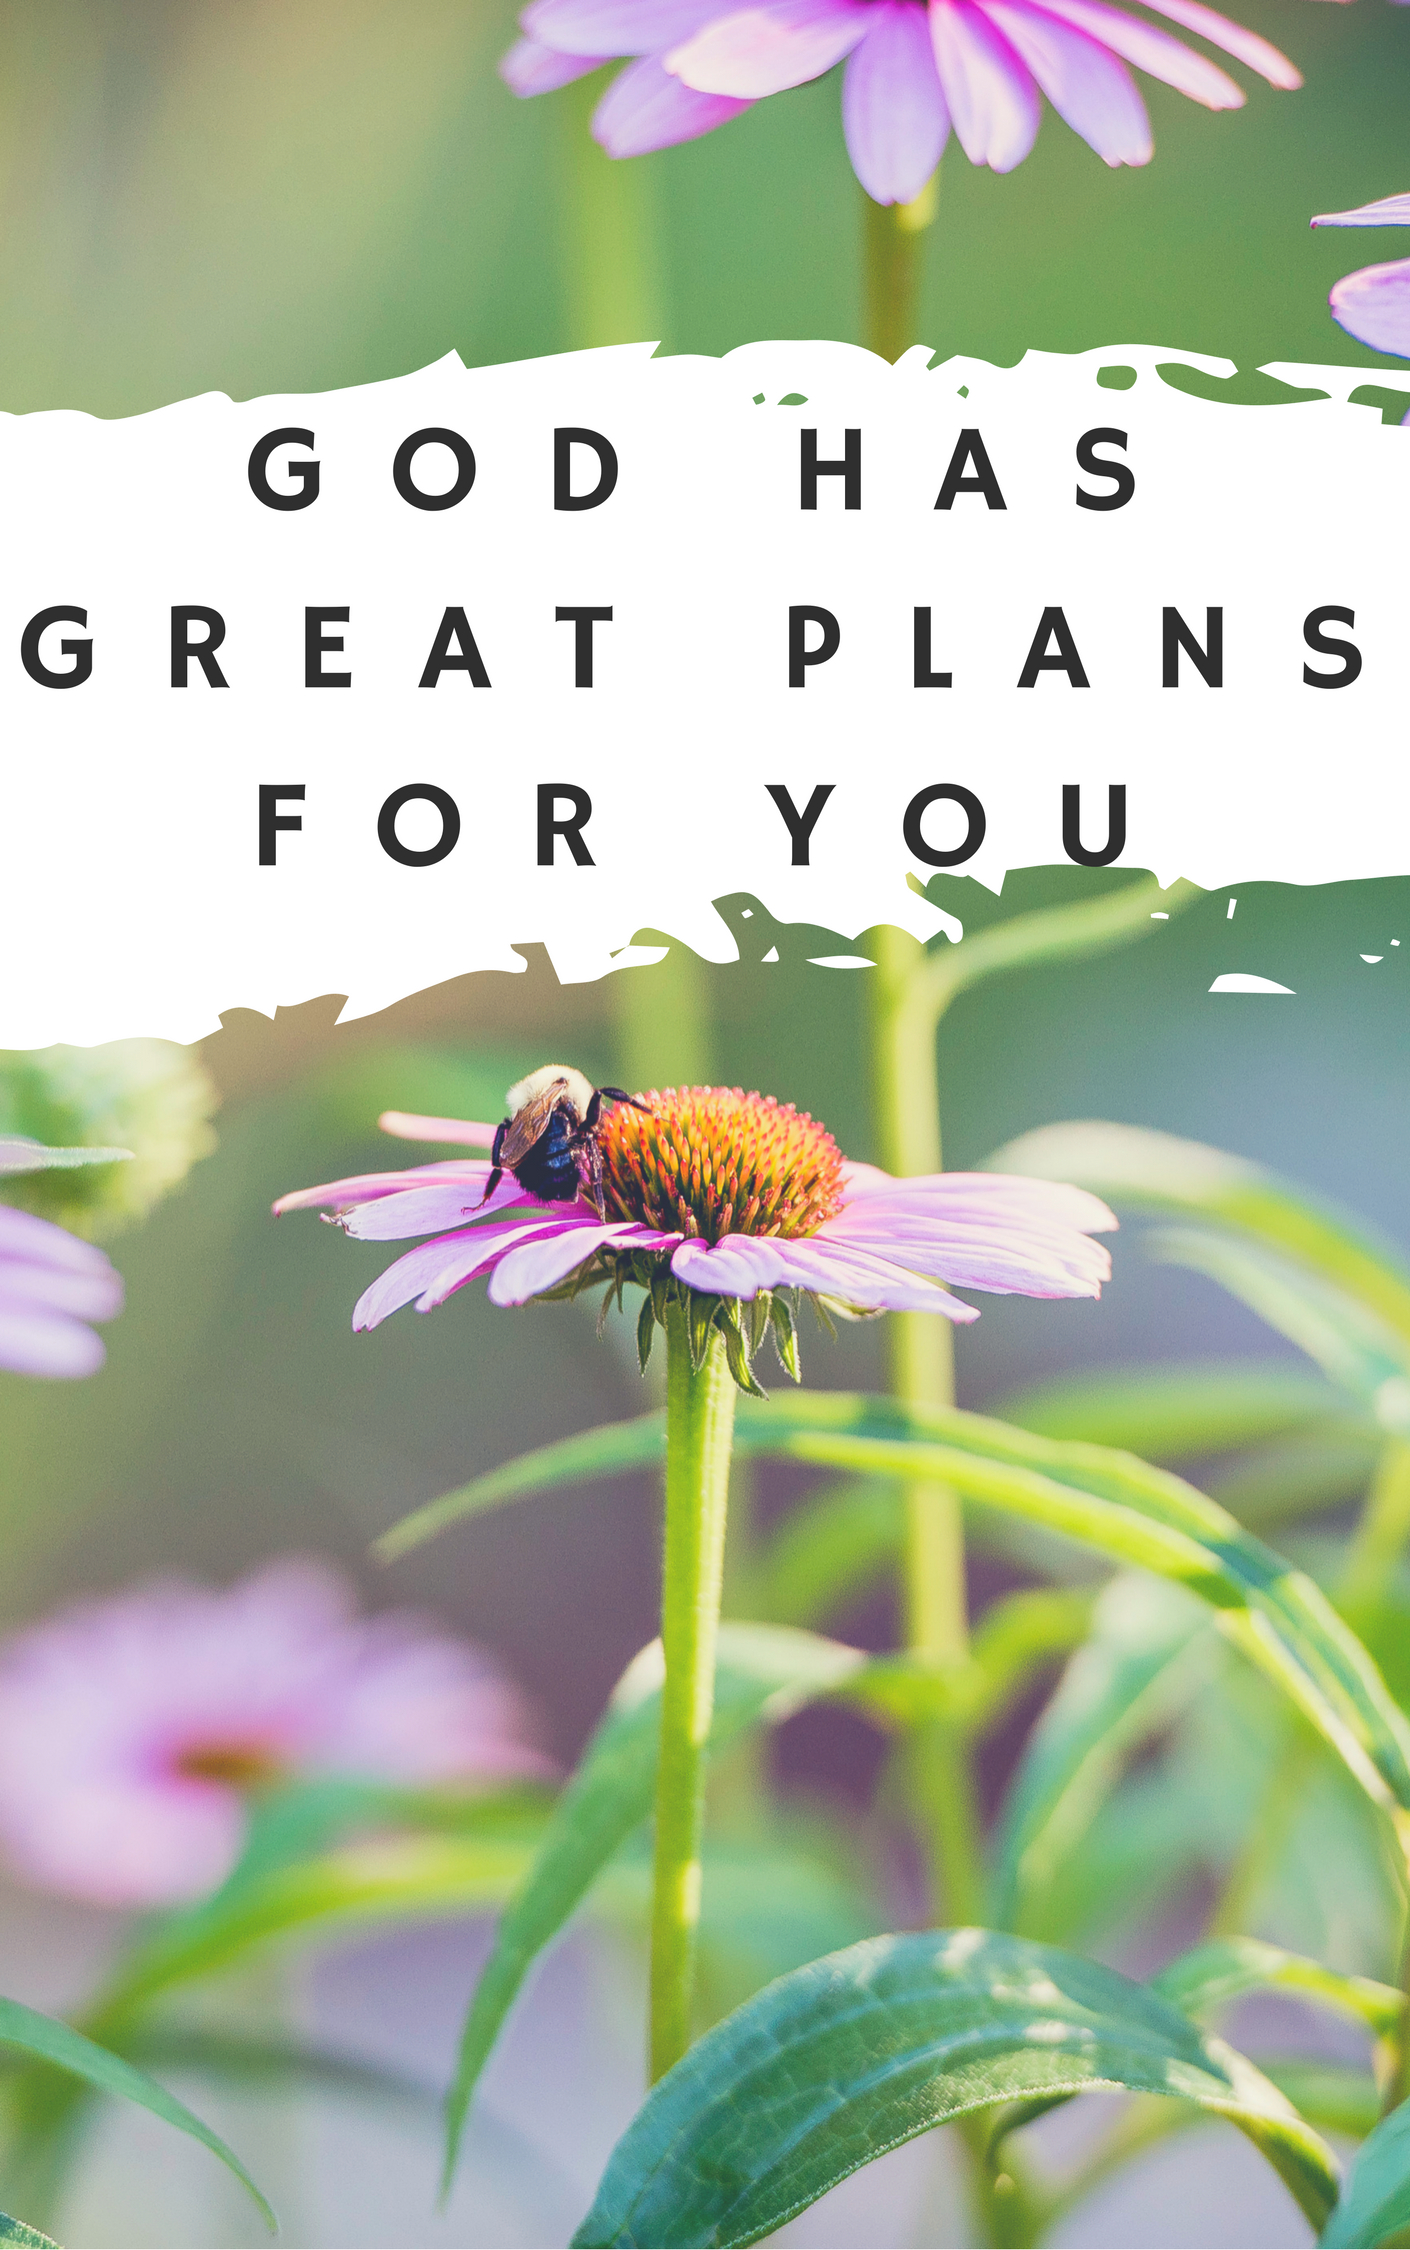 Free Printable Christian Cards For All Occasions - Free Printable Christian Cards Online